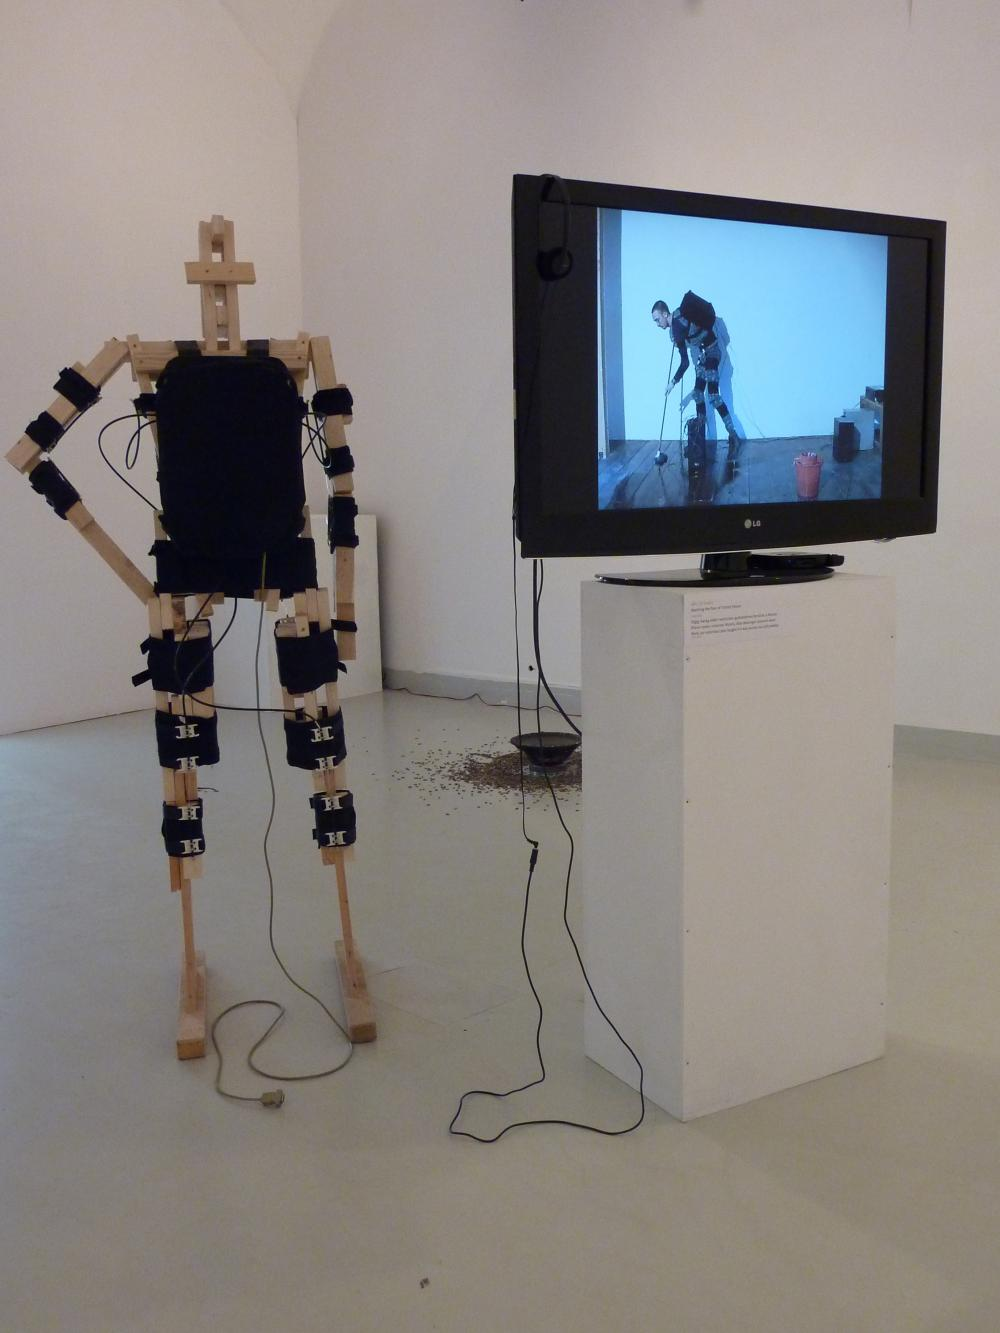 Wearable Sound, motion capture - digital audio instrument, performance documentation, 2004-2013. Installation view from Stimulated Vibrations at MAGMA, Sf. Gheorghe, 2013